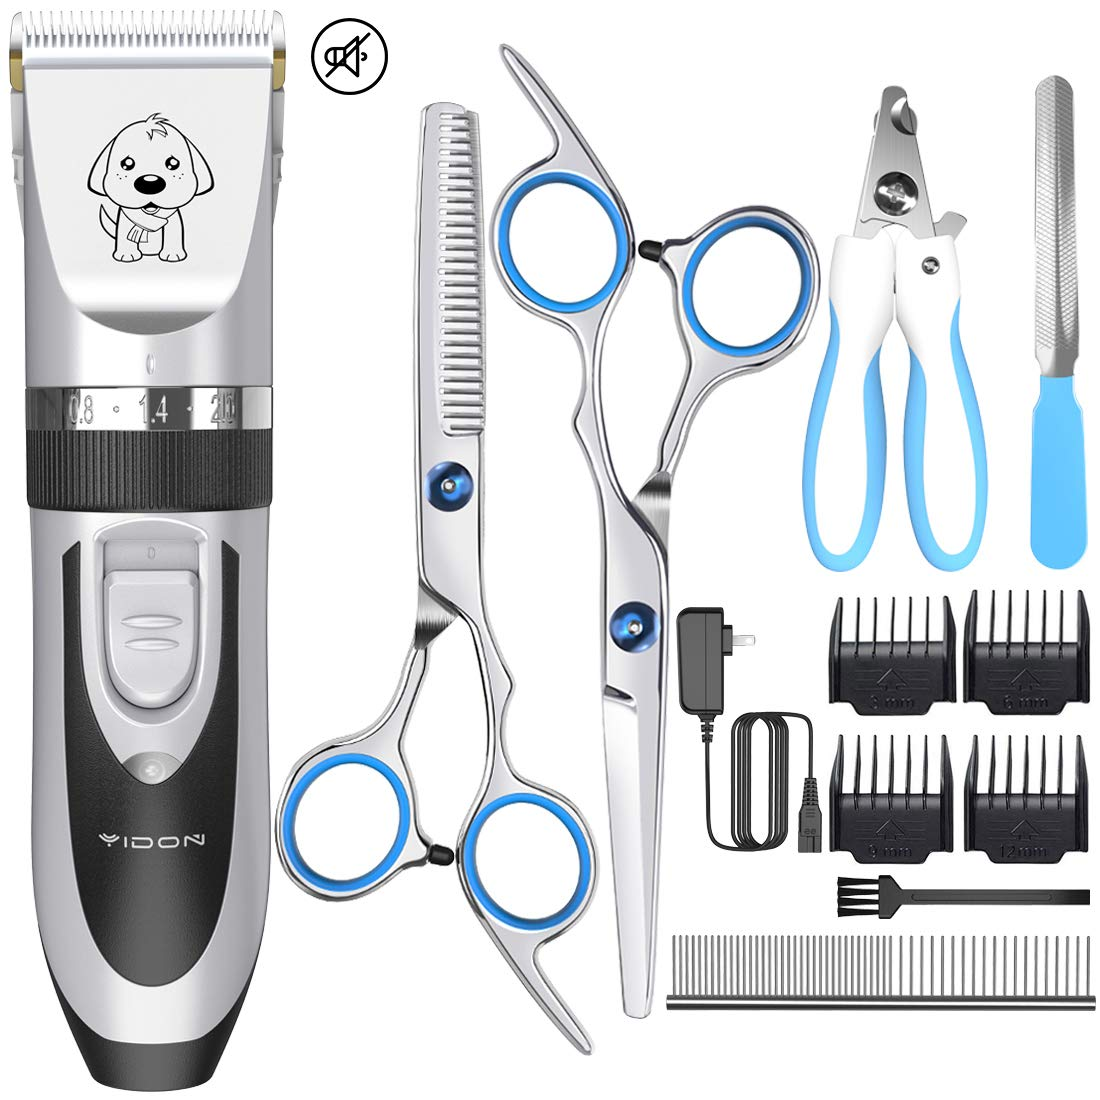 YIDON Dog Clippers, Dog Grooming kit Cordless Adjustable Pet Clippers Dog Hair Trimmer Rechargeable Dog Shears Pet Grooming Professional Hair Clippers Low Noise for Small Large Dogs,Cats,All Pets